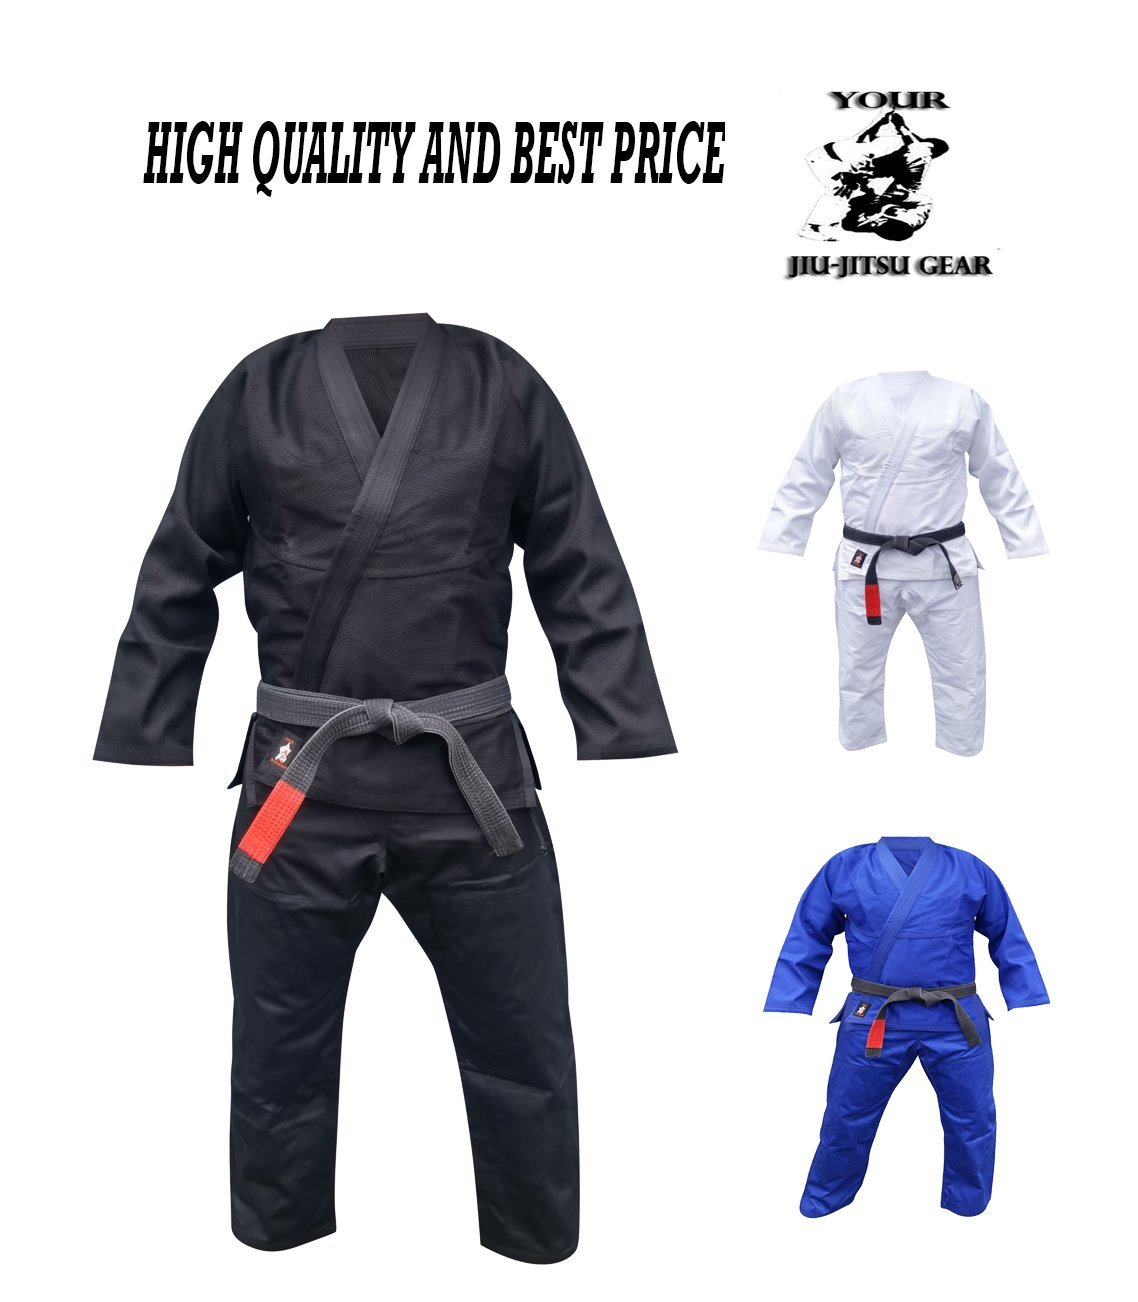 Your Jiu Jitsu Gear Brazilian Jiu Jitsu Uniform Light A1 Black Free White Belt by Your Jiu Jitsu Gear